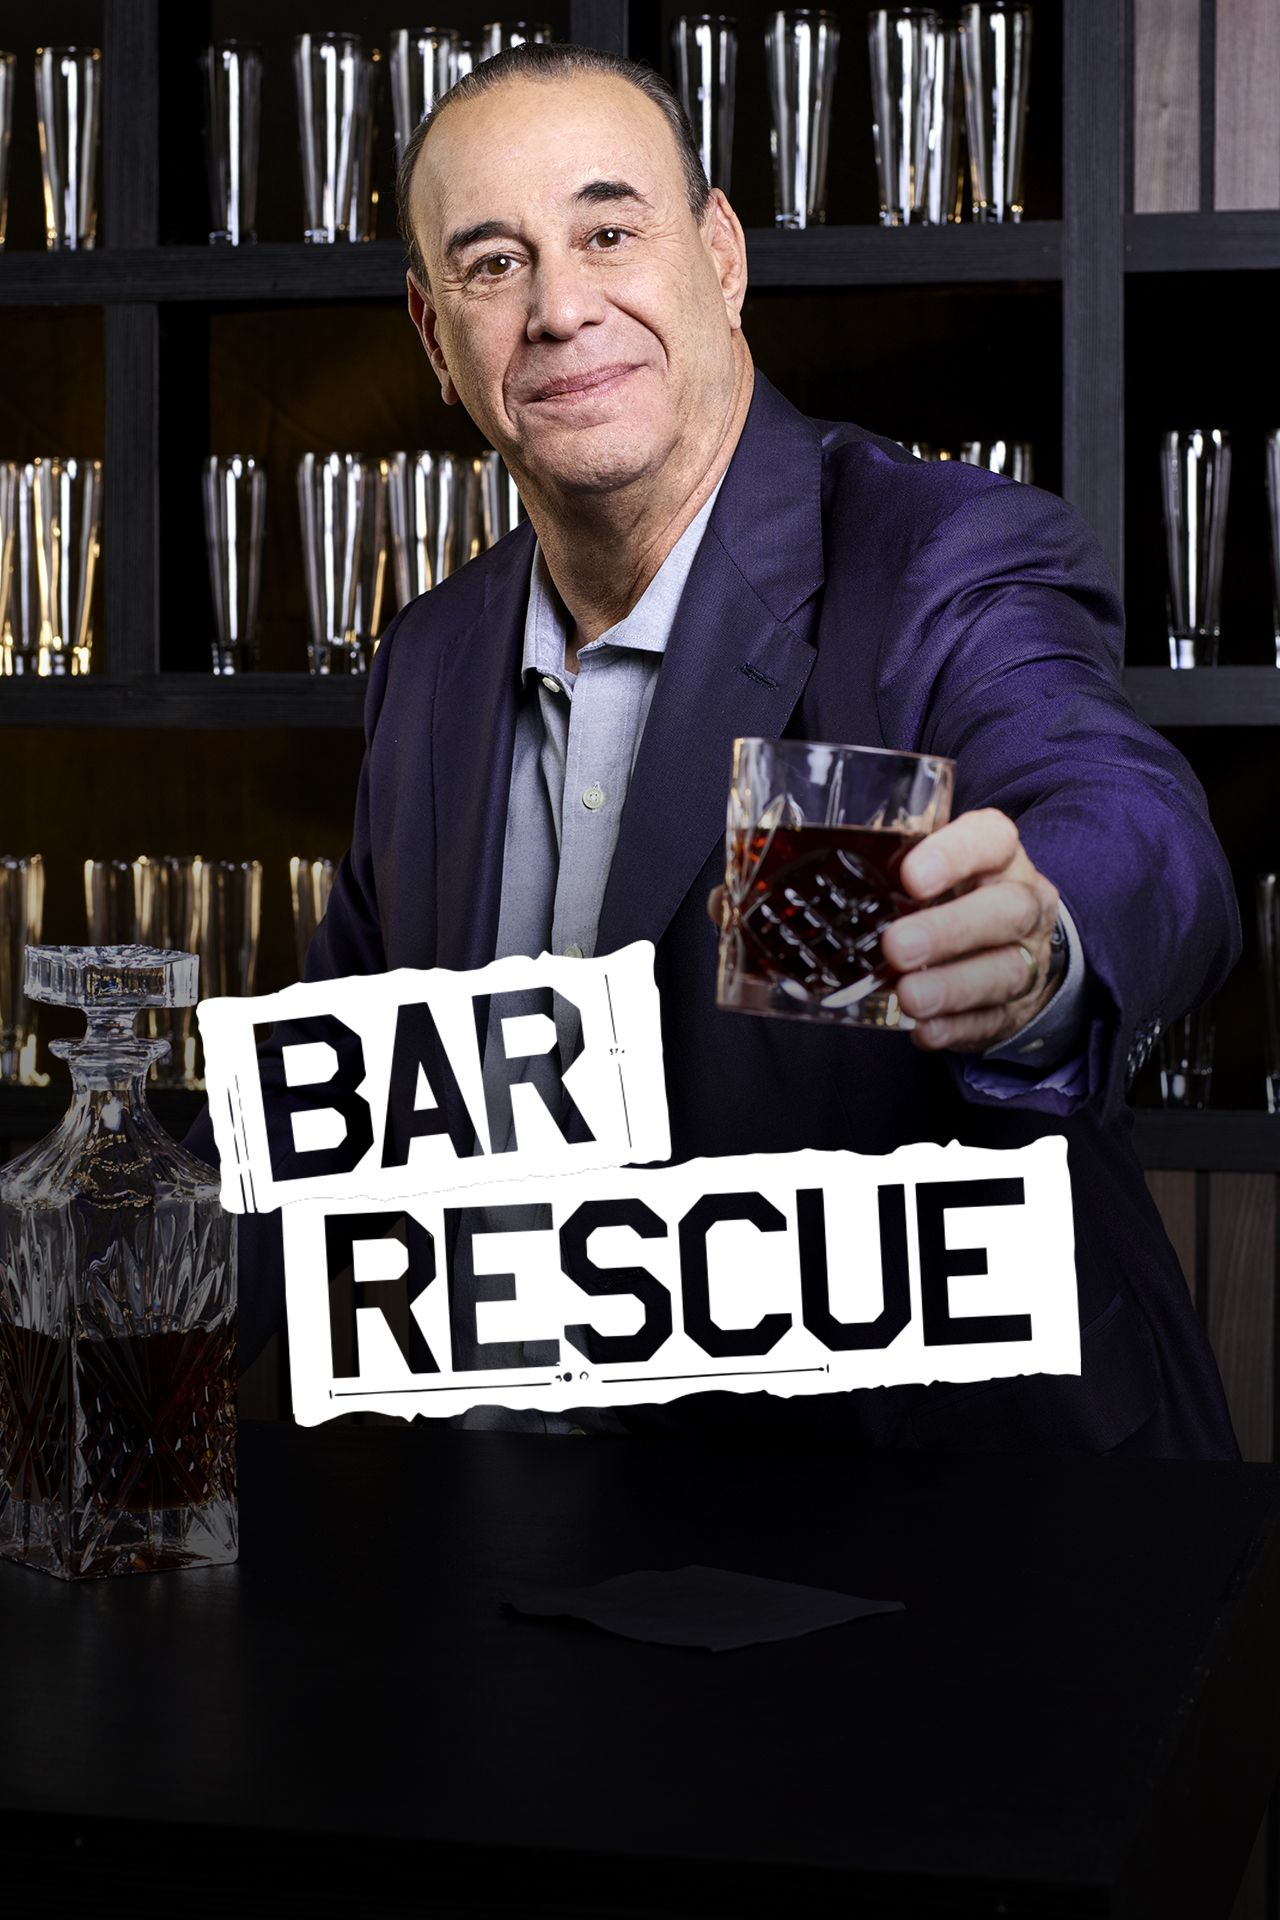 Bar Rescue - Season 6 Episode 40 - John and Bert Bought a Bar